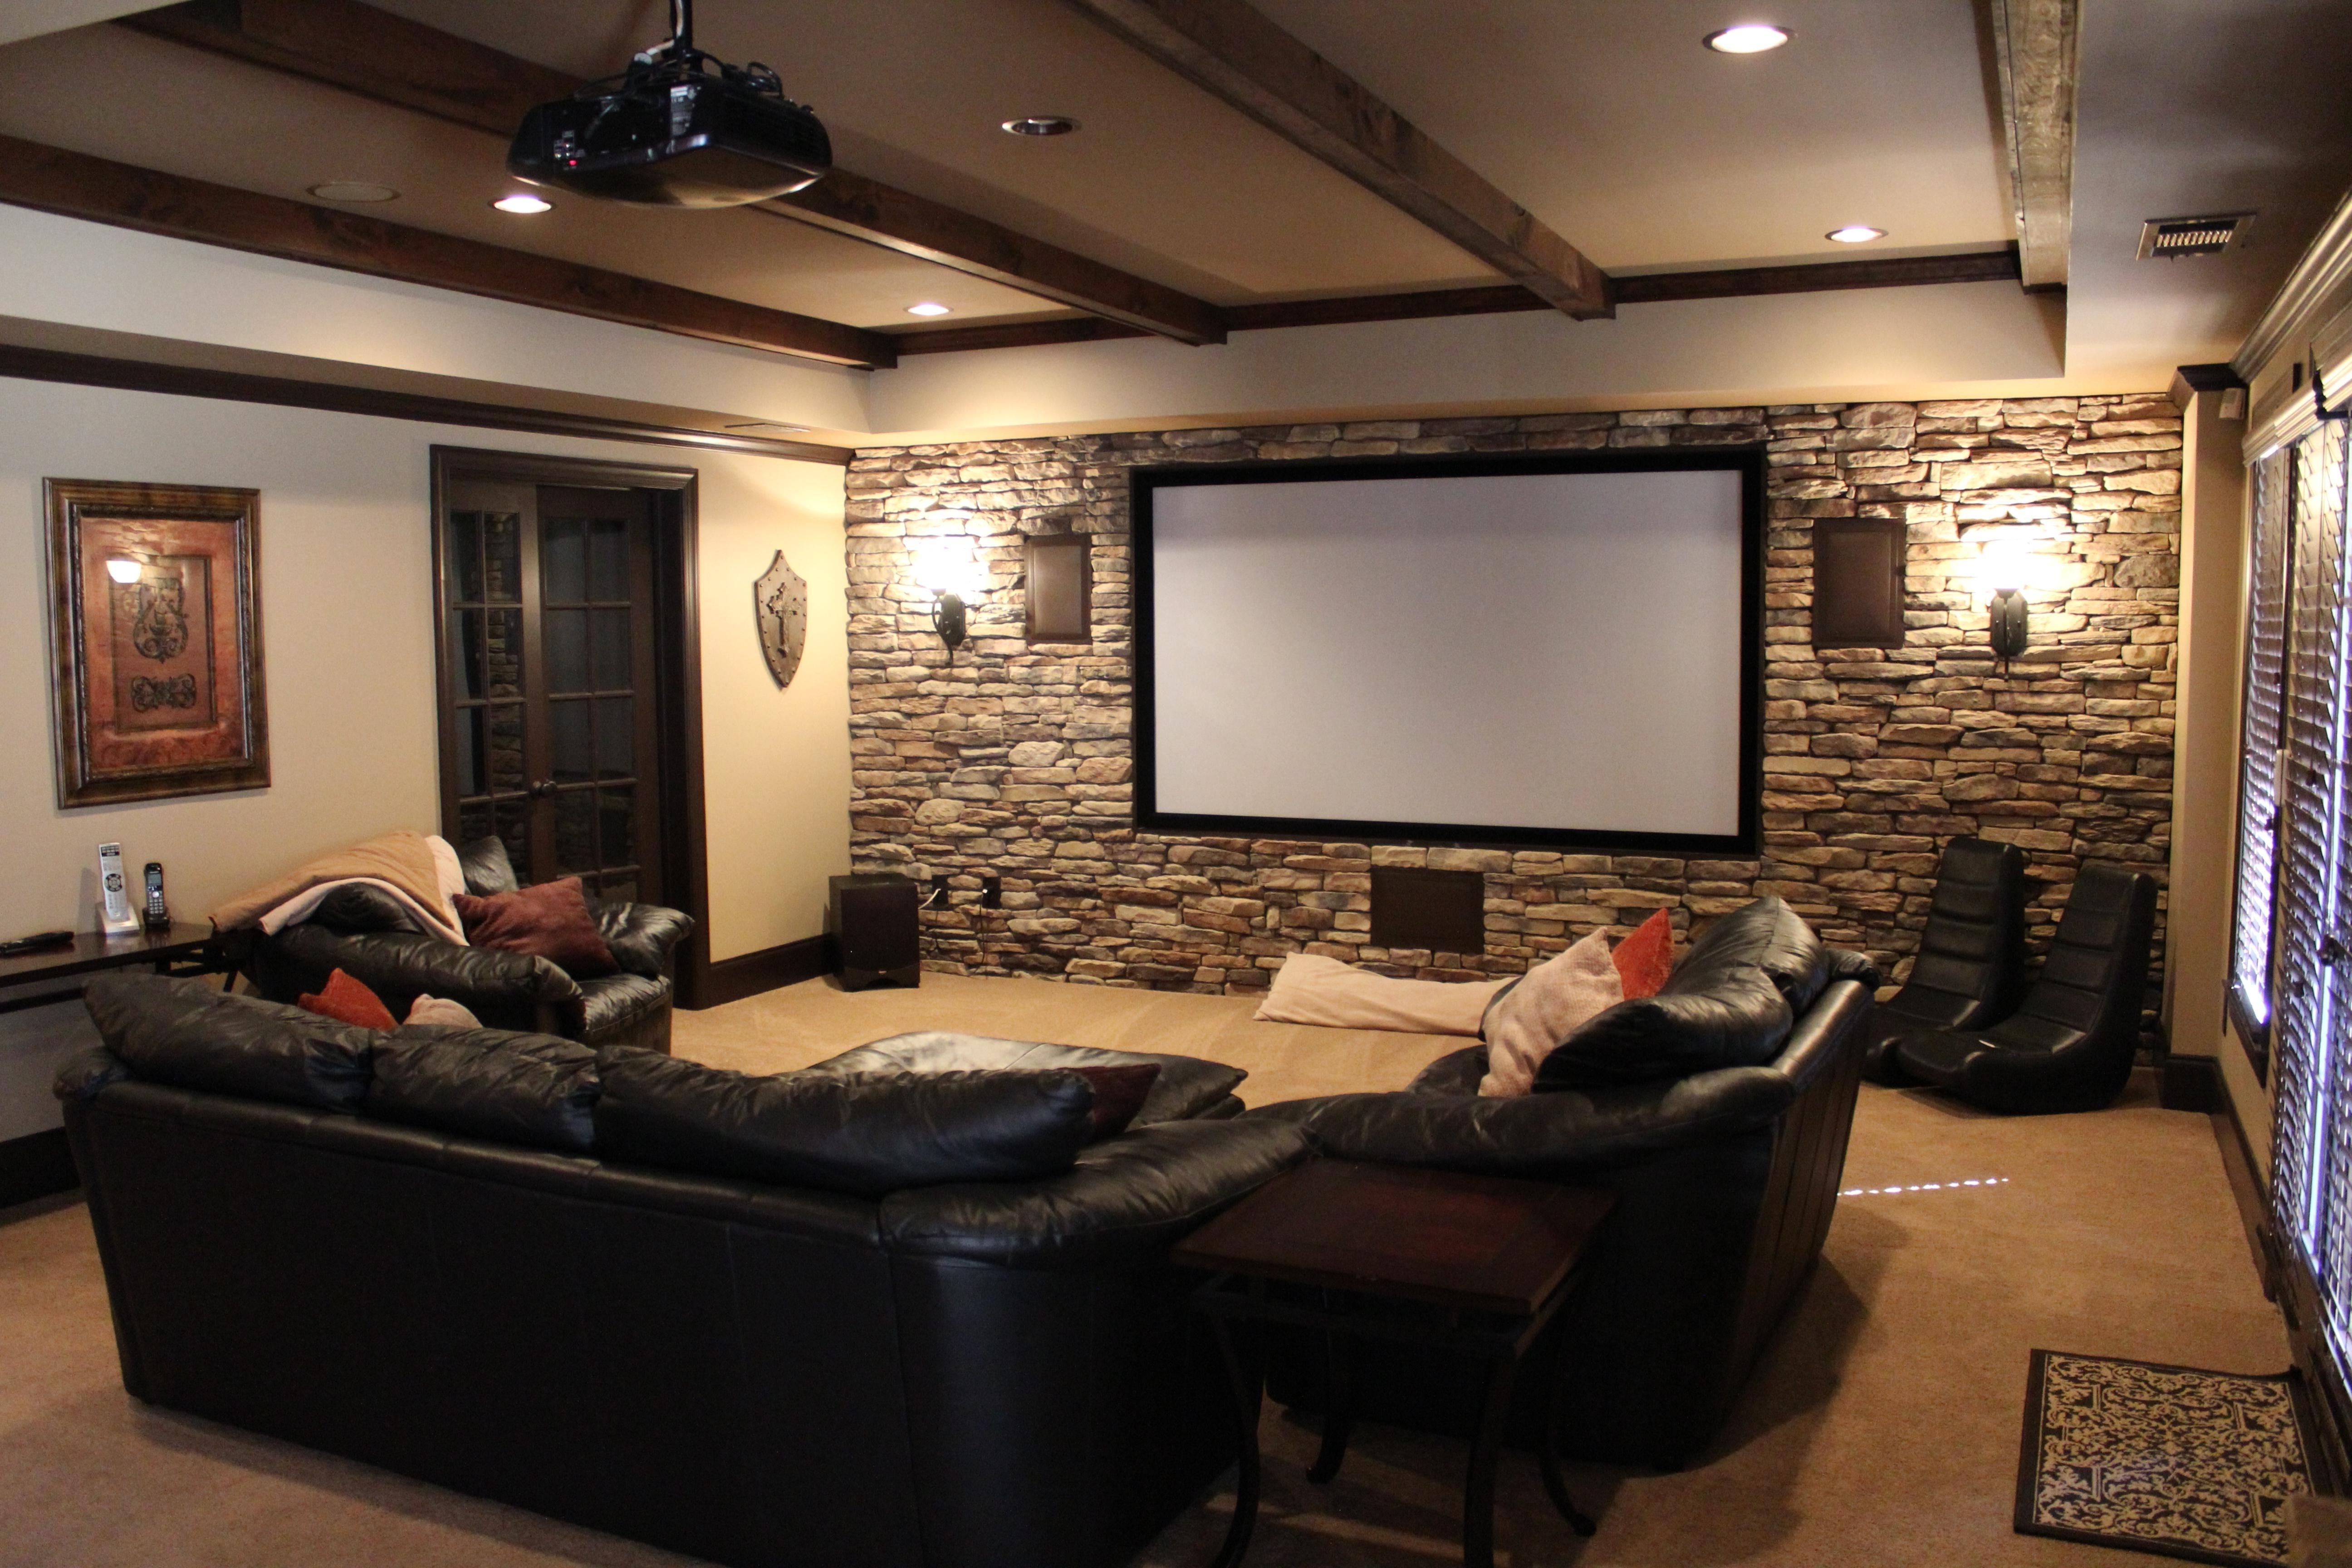 15 Best Ideas of Wall Accents For Media Room